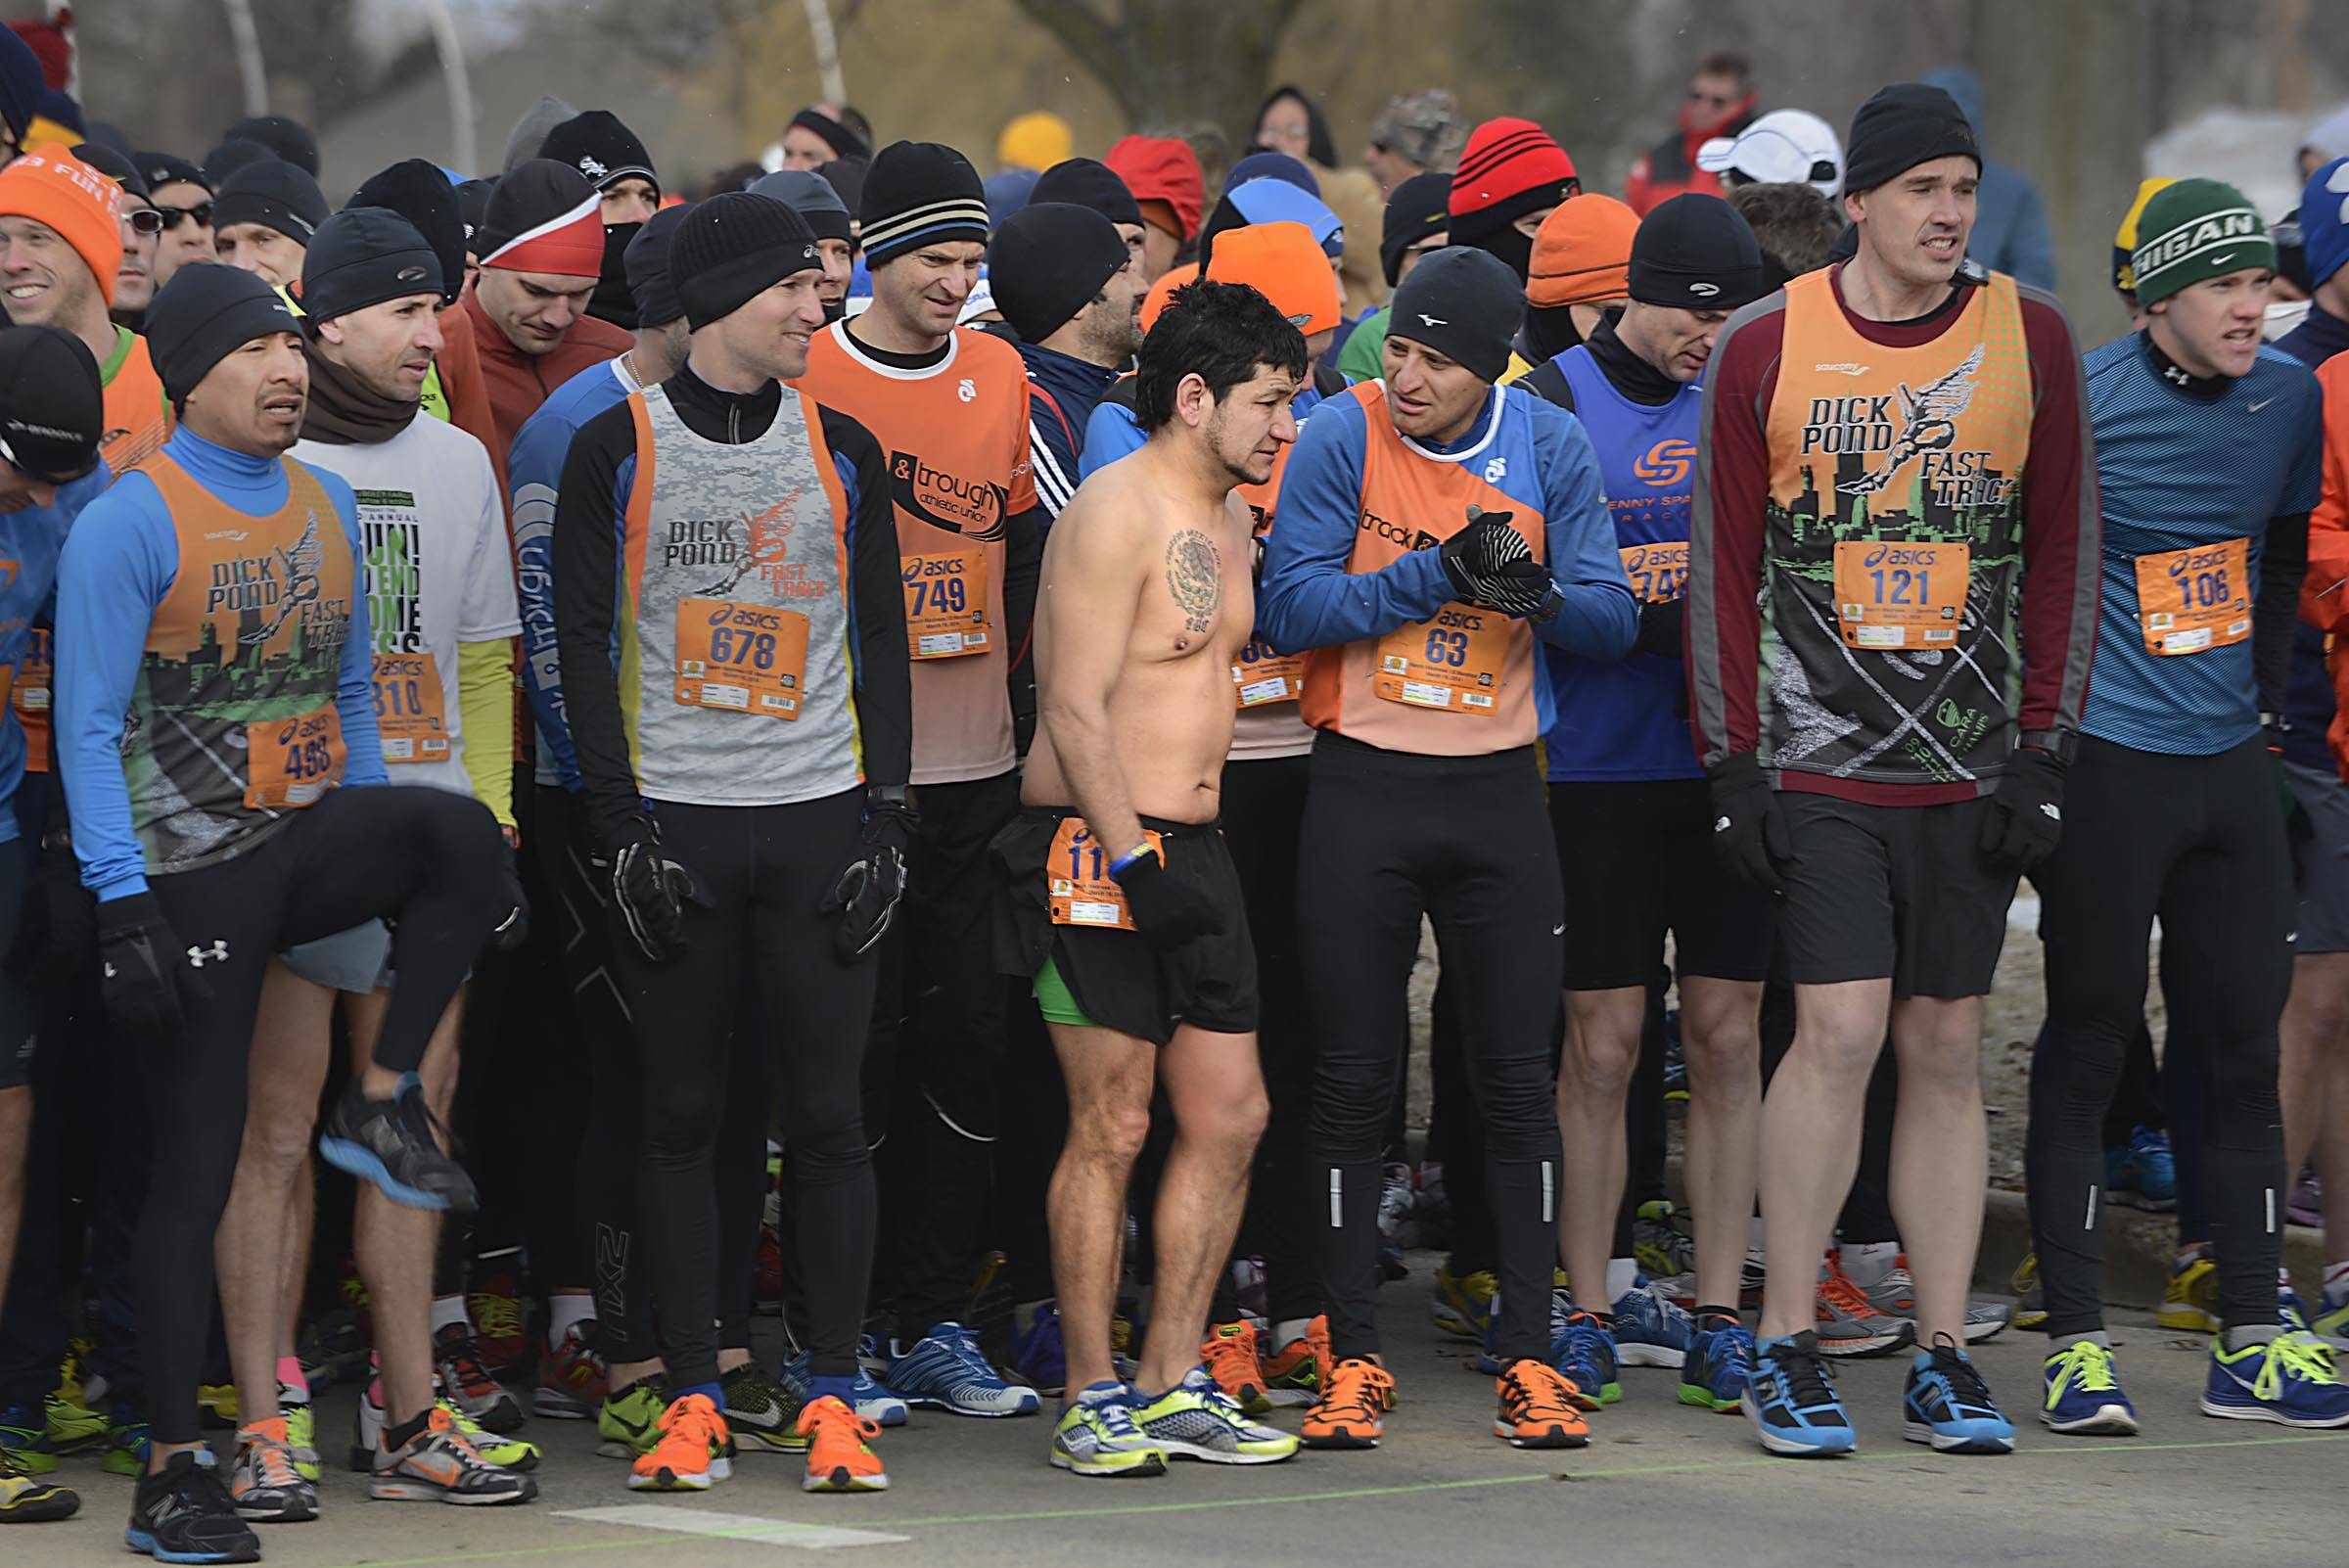 Elpidio Vilchez, of Chicago, doesn't seem to mind the subfreezing temperatures Sunday morning at the start of the March Madness Half Marathon in Cary. The annual run is a fundraiser for the Hillstrider Distance Running Scholarship.